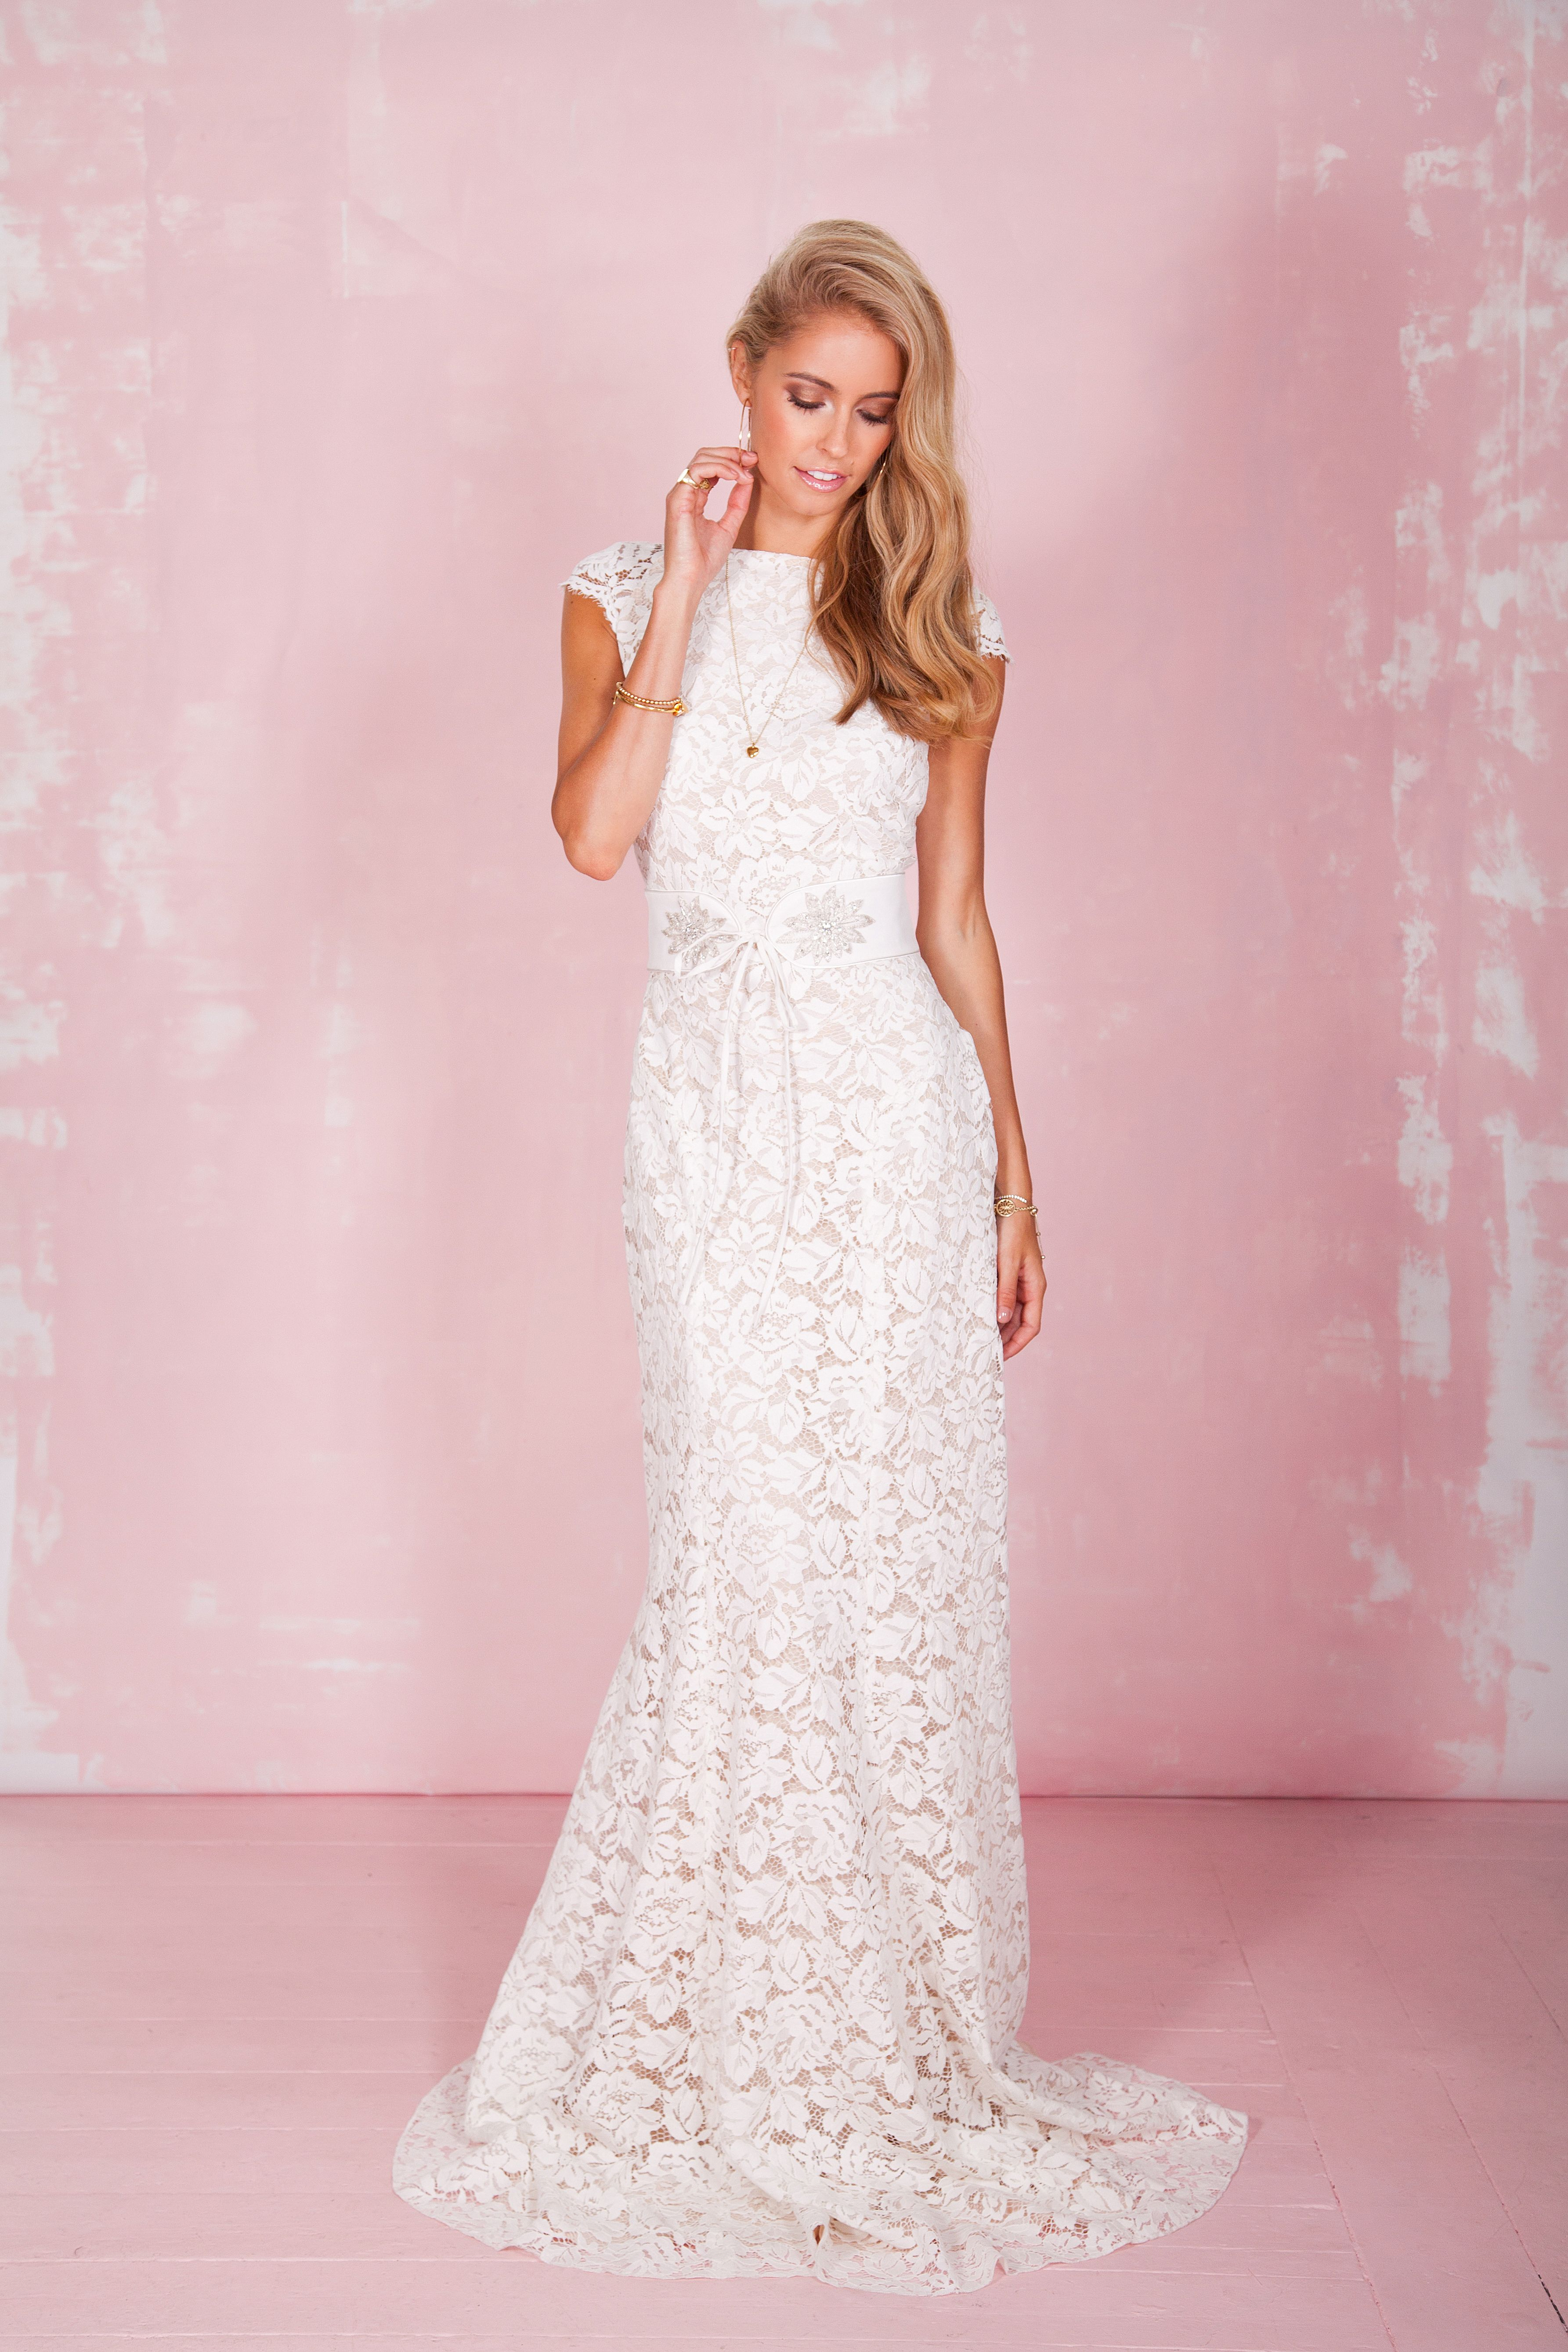 Jerry dress with belt front wedding pinterest bridal